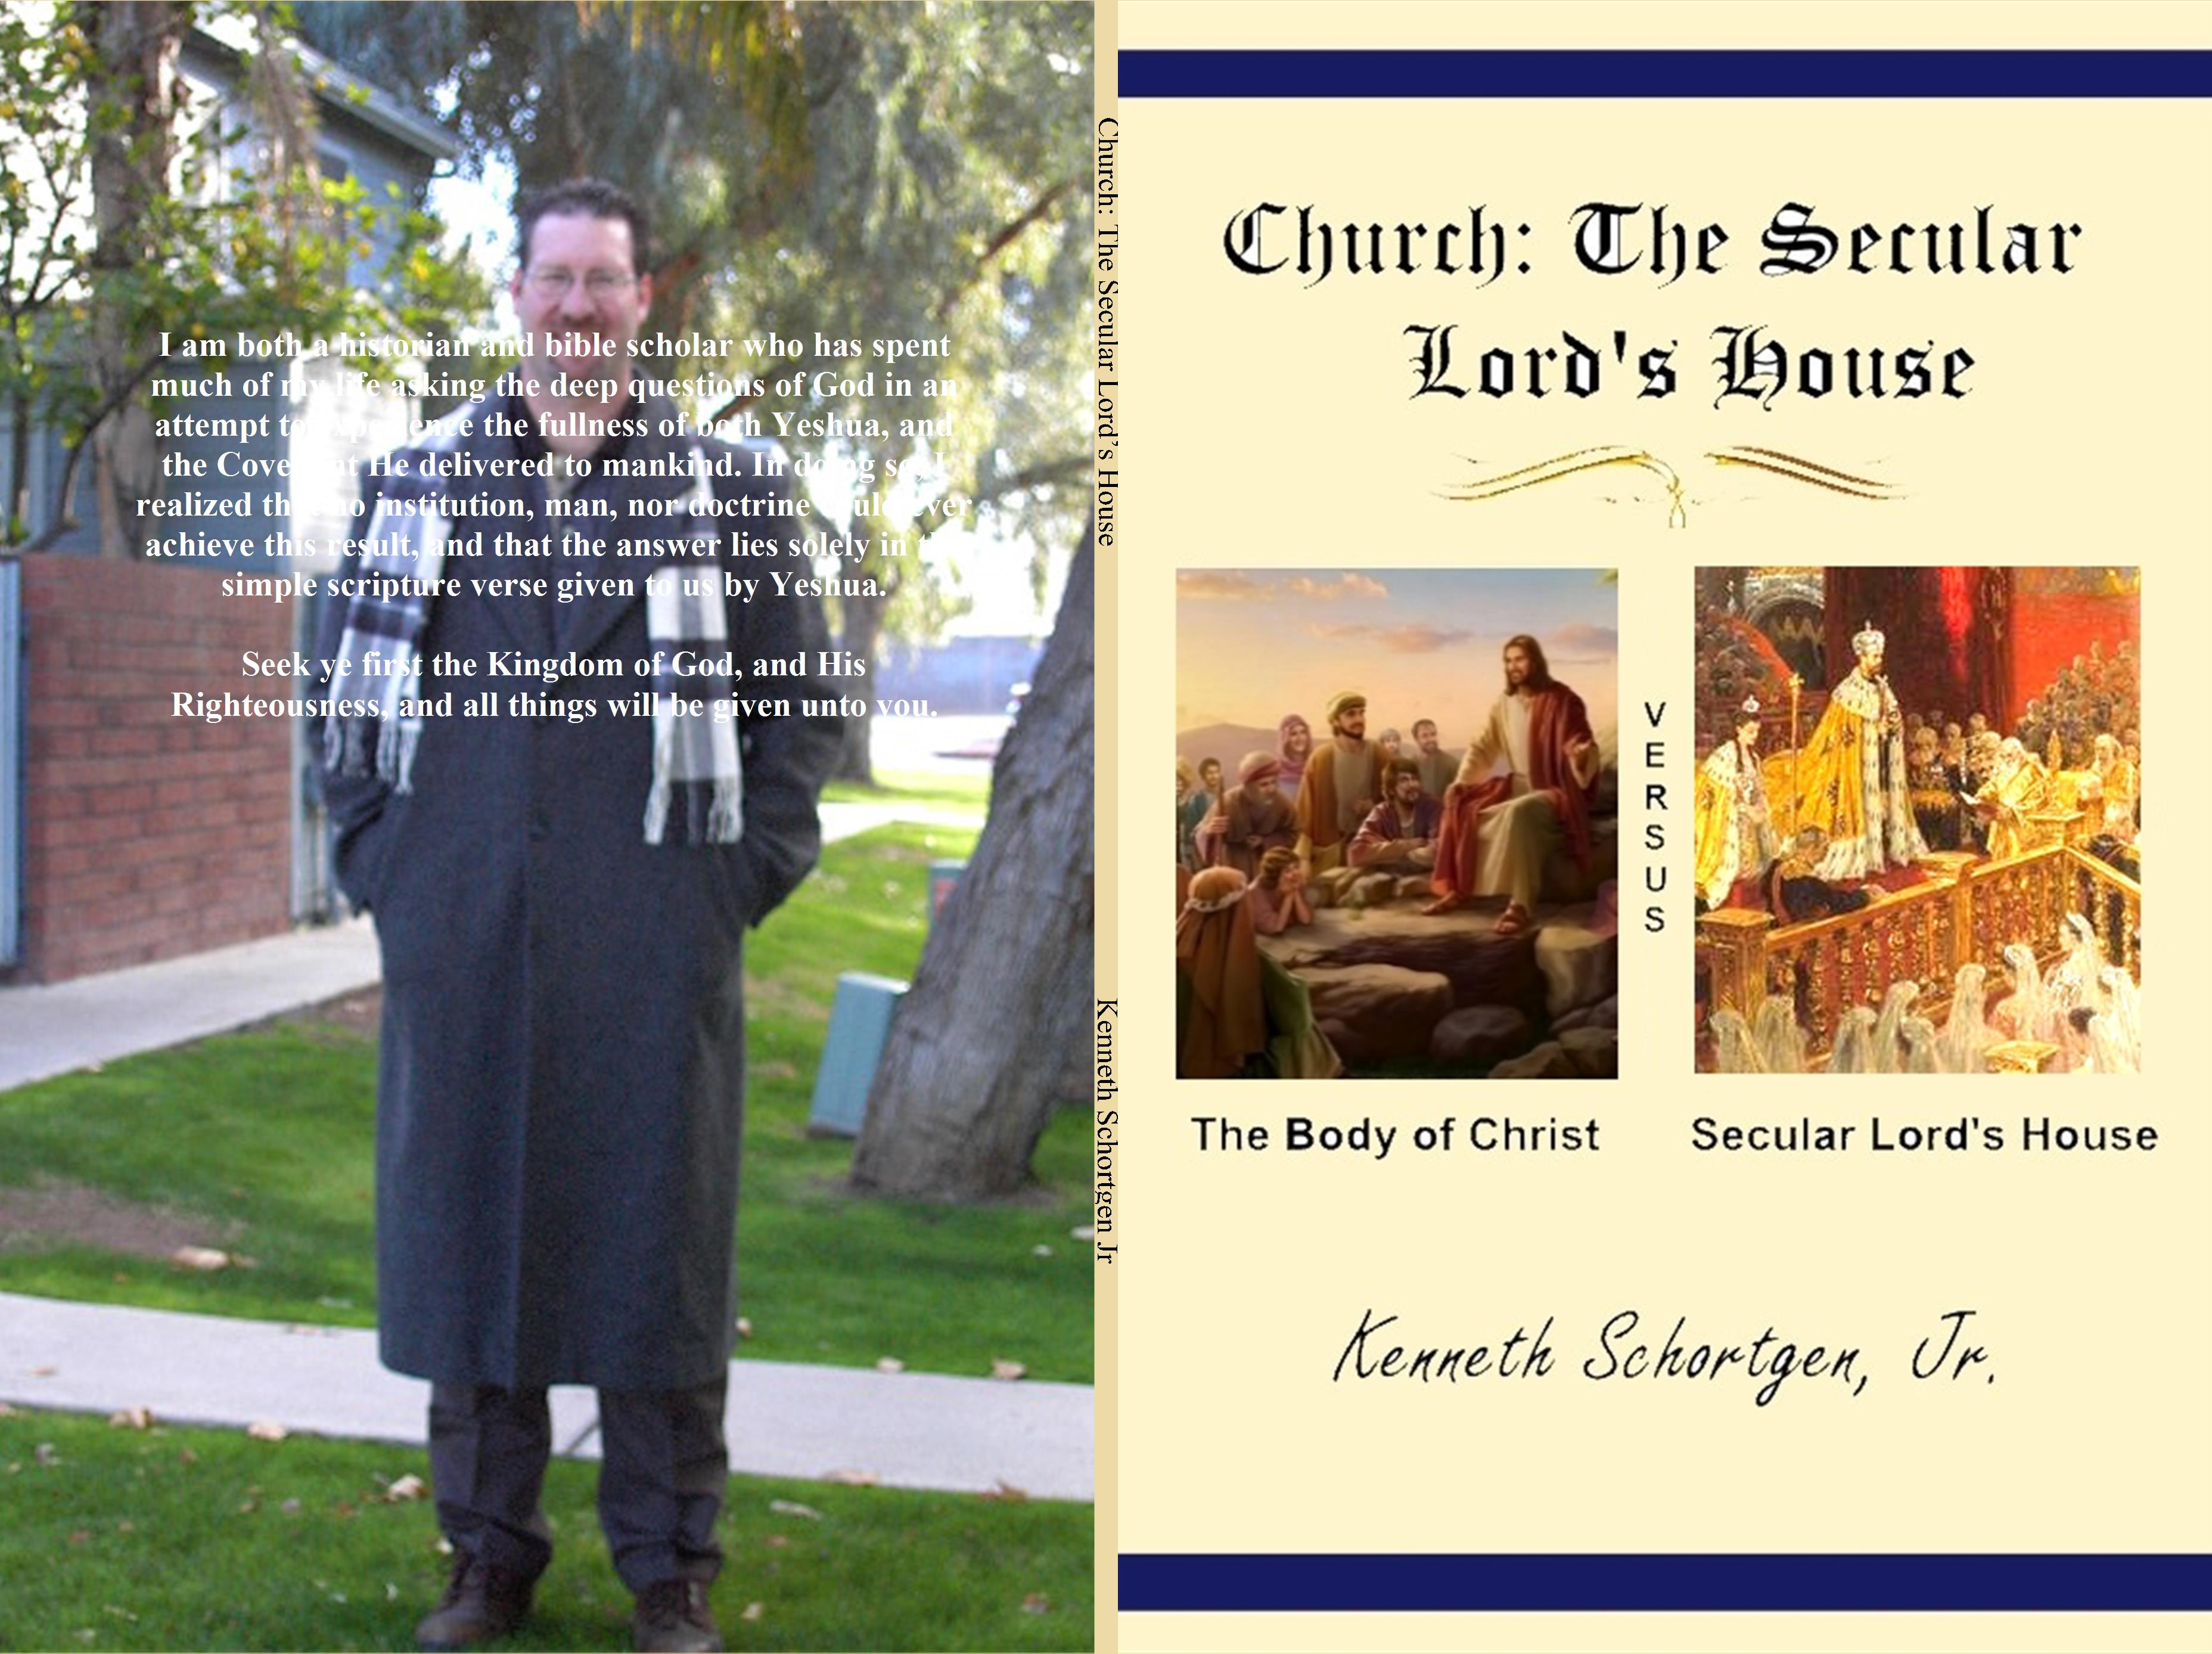 Church: The Secular Lord's House cover image